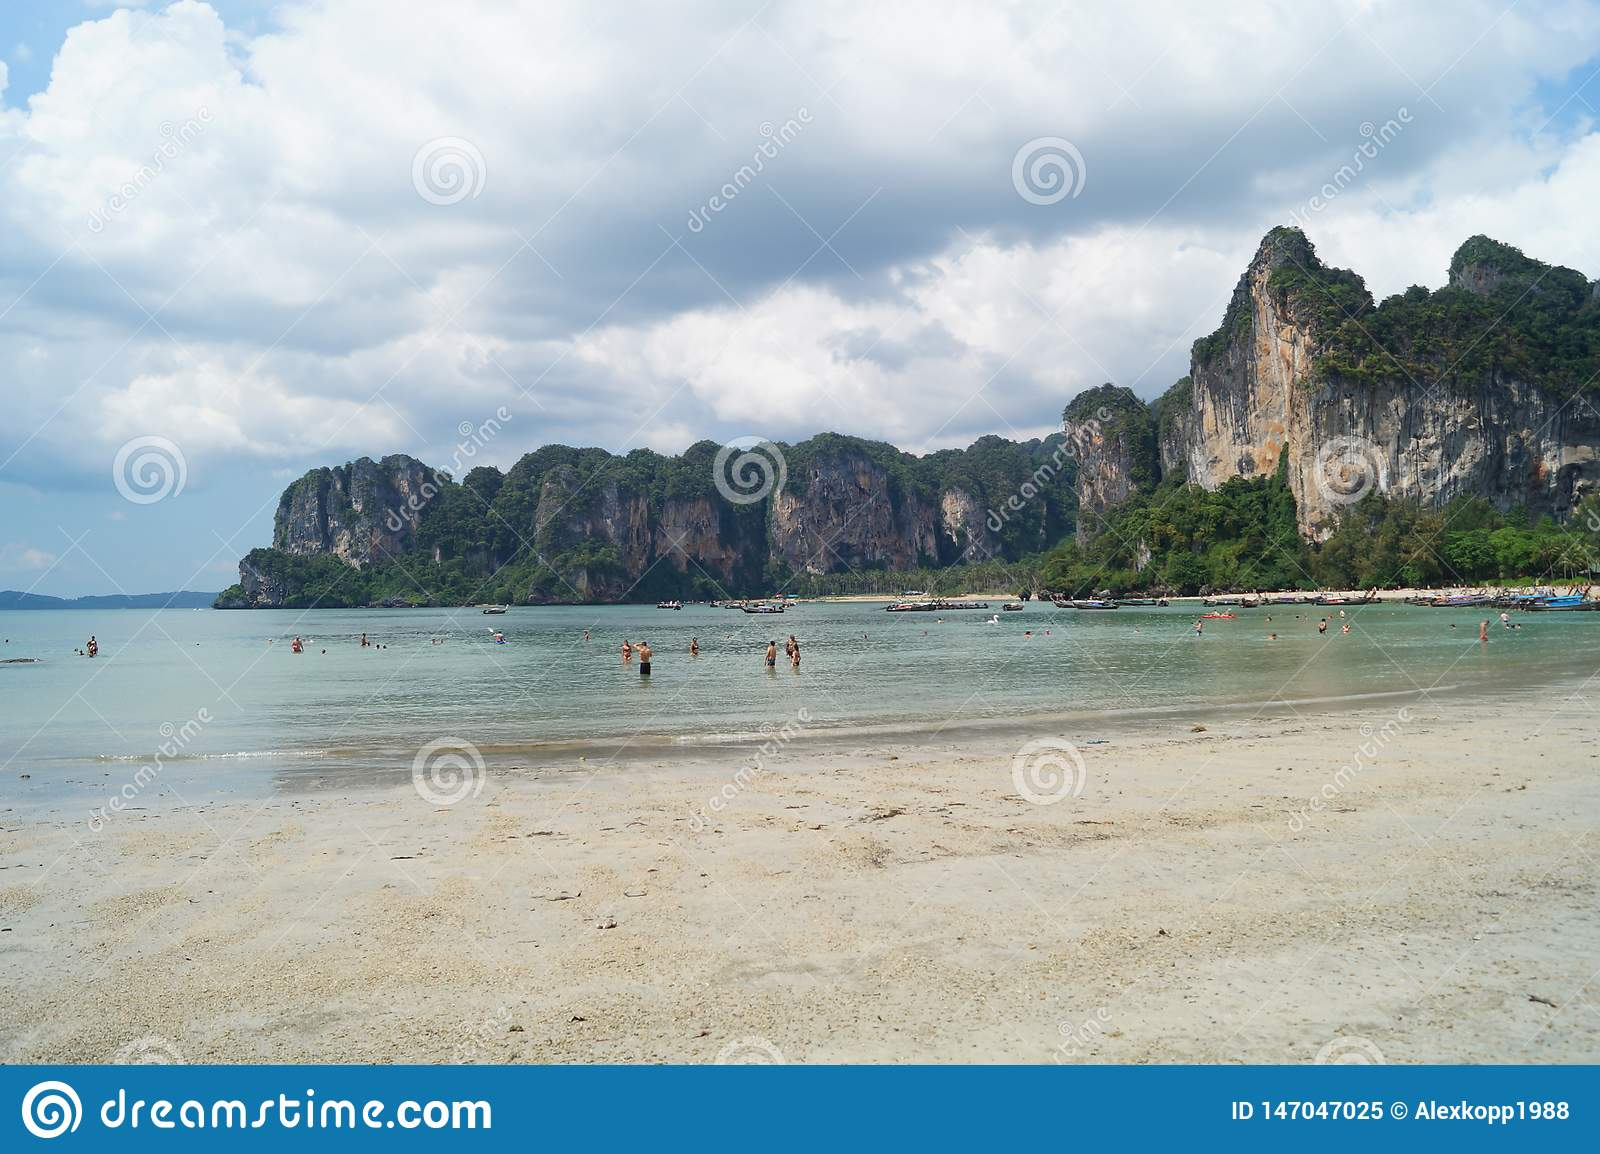 People enjoying the blue sky and the turquoise beach with rocks in Krabi, Thailand